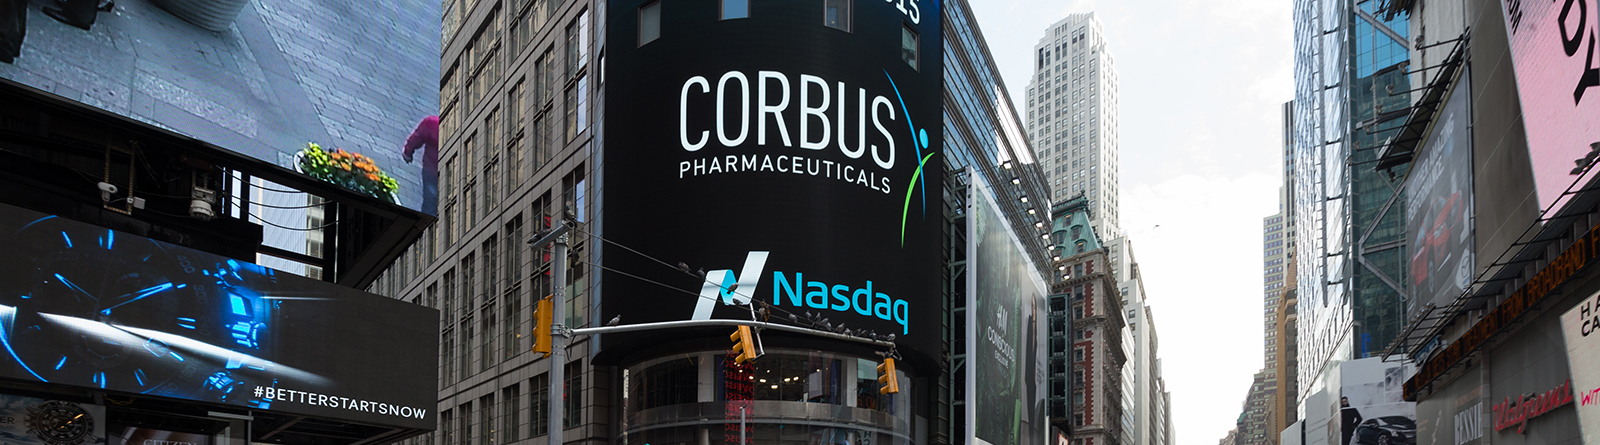 Corbus Pharmaceuticals to Present at Two Investor Conferences in September Banner